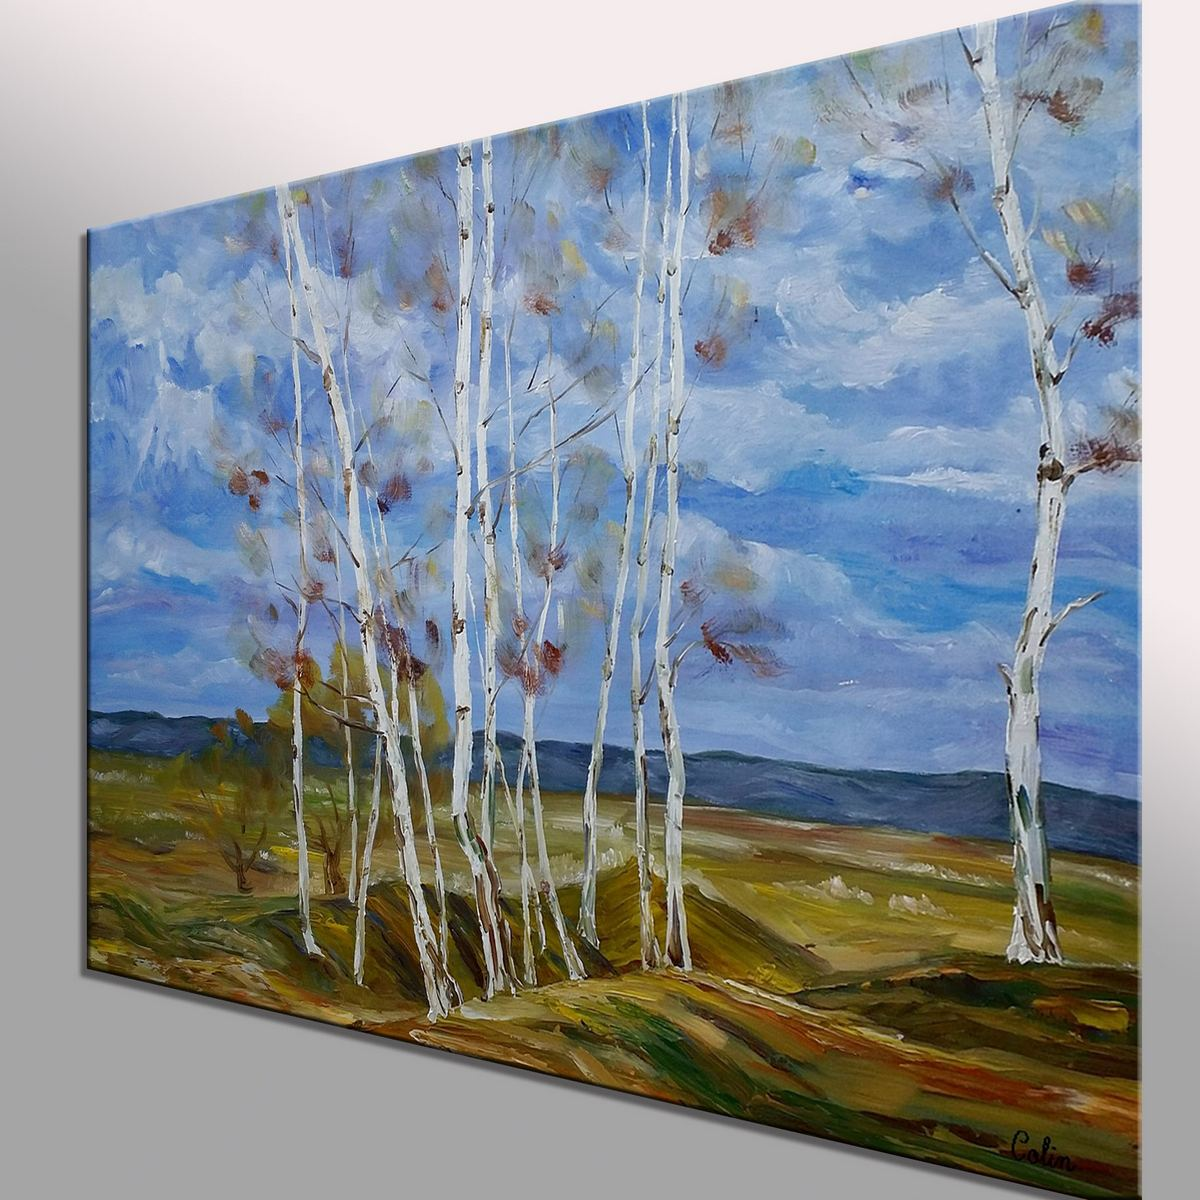 Landscape Art, Autumn Tree Painting, Original Wall Art, Large Art, Canvas Art, Wall Art, Original Artwork, Canvas Painting, Oil on Canvas, 366